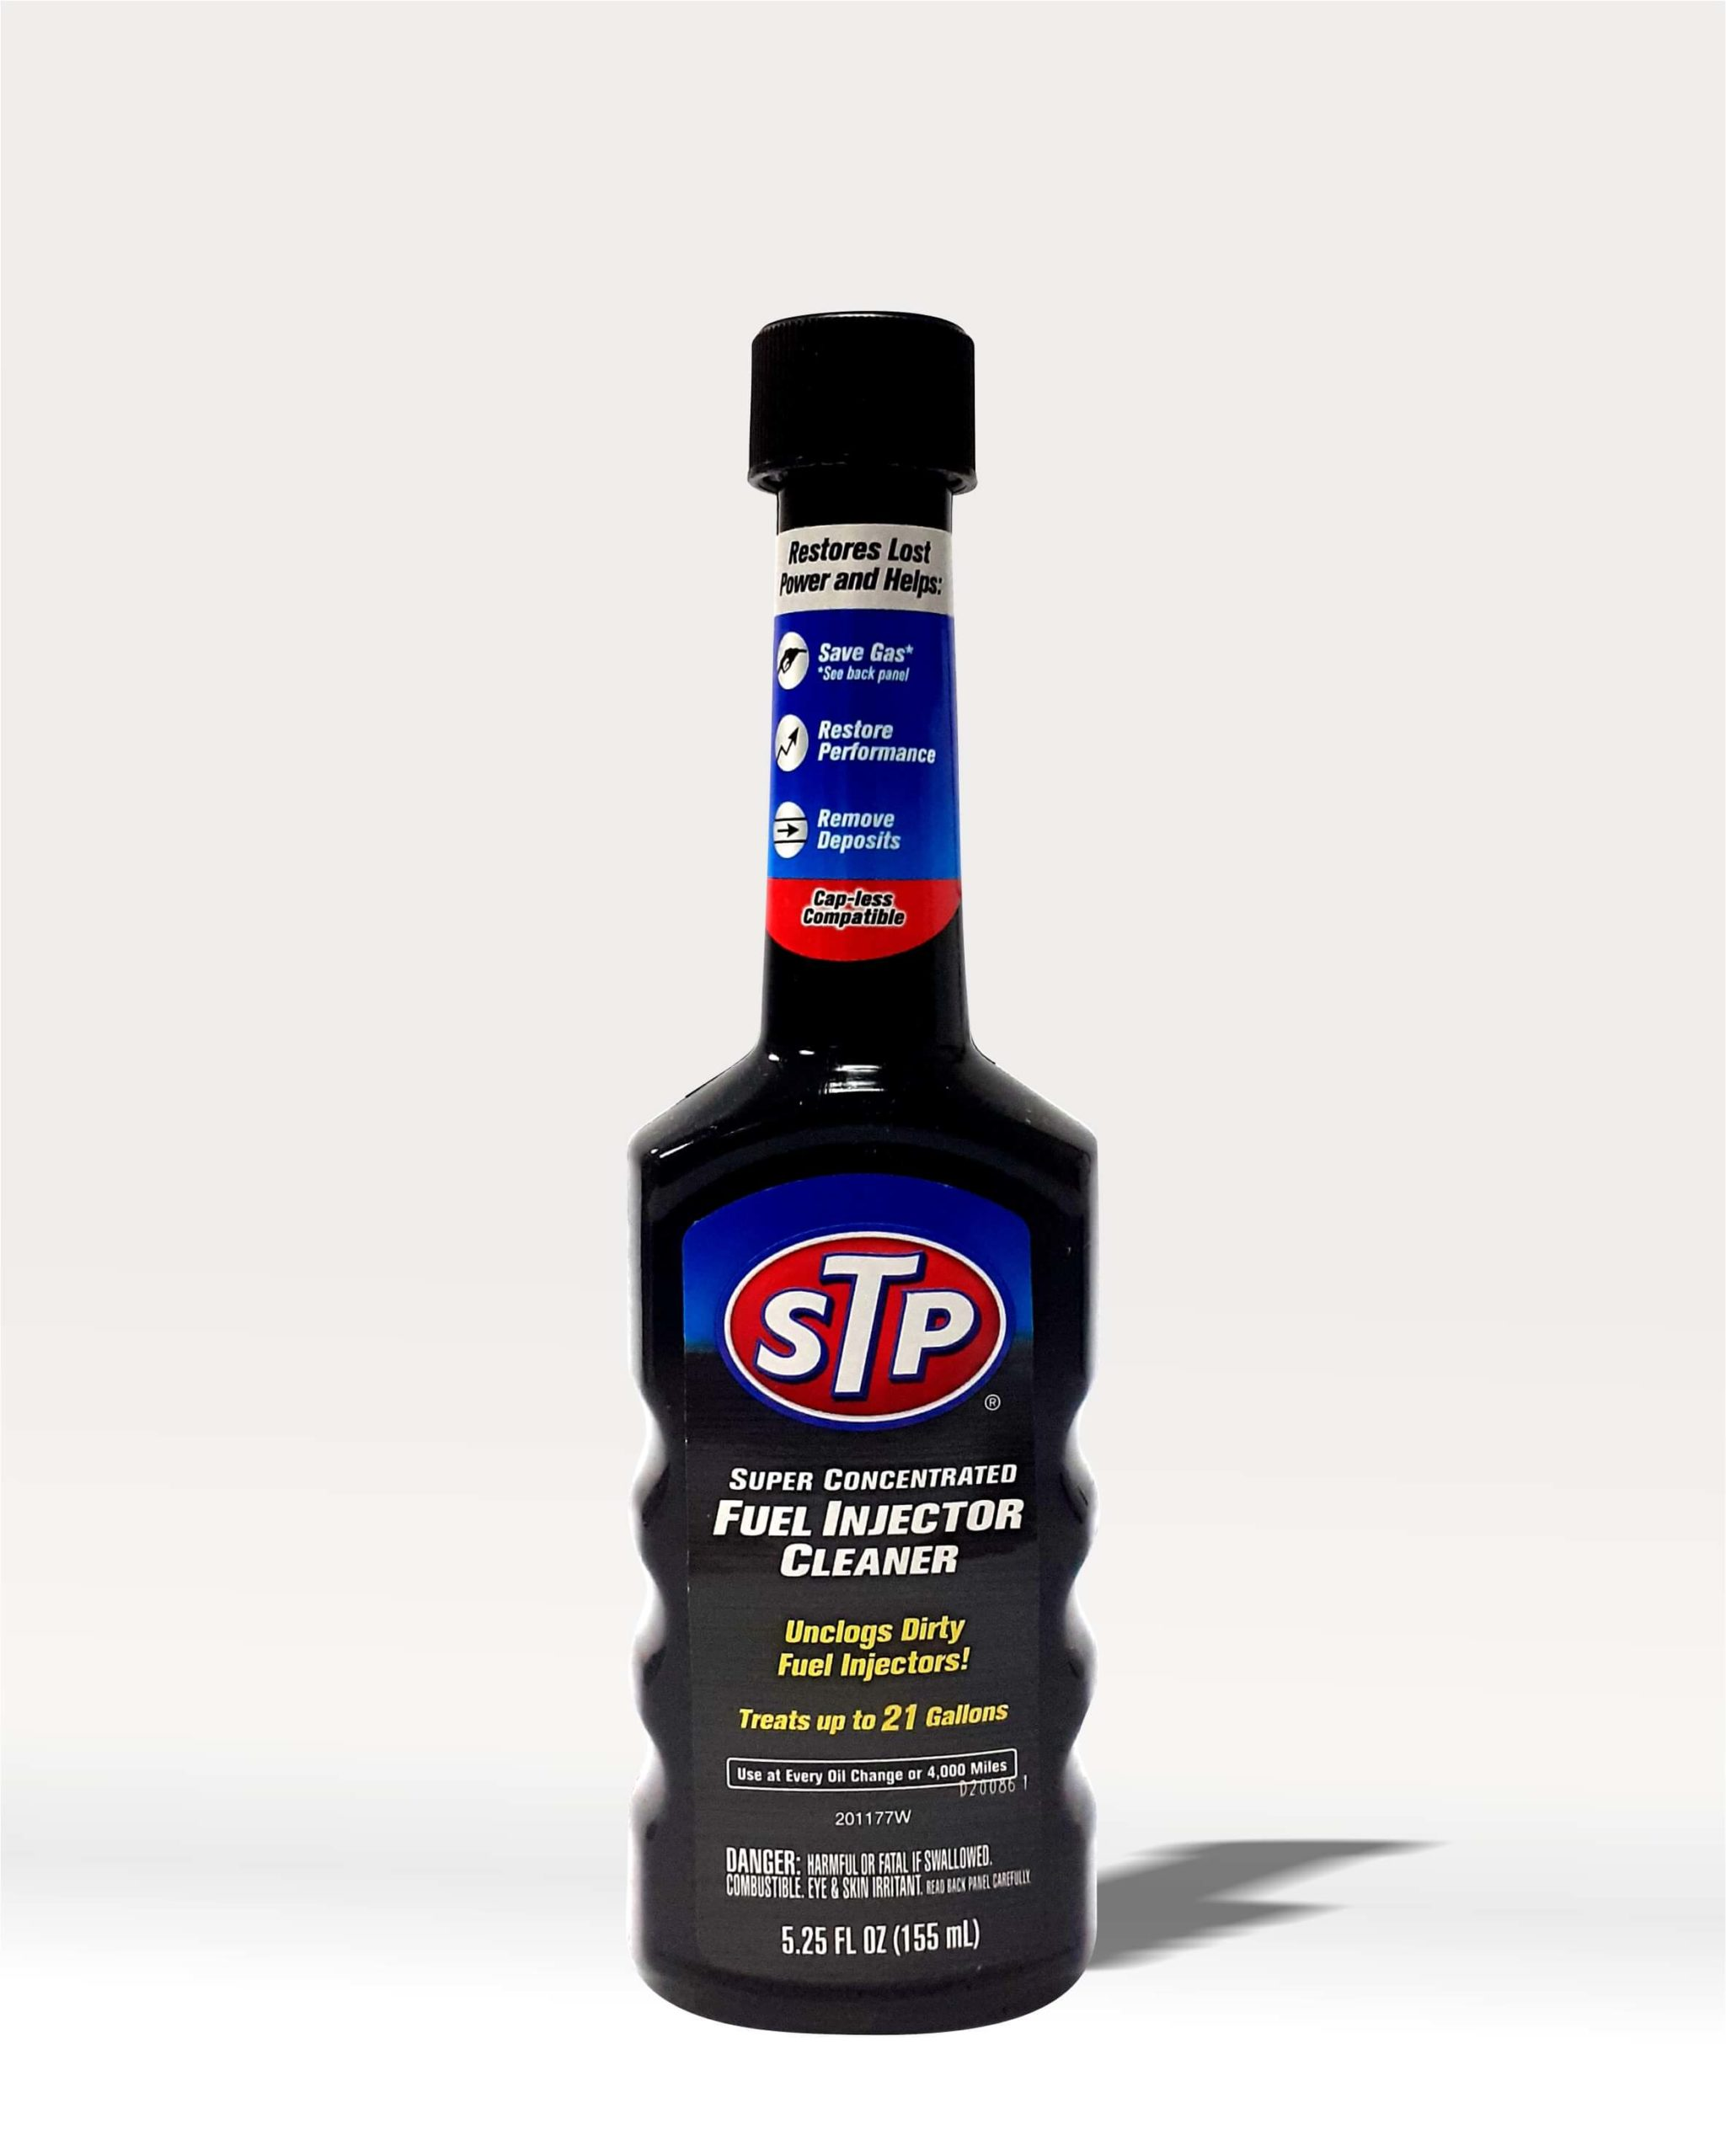 STP FUEL INJECTOR